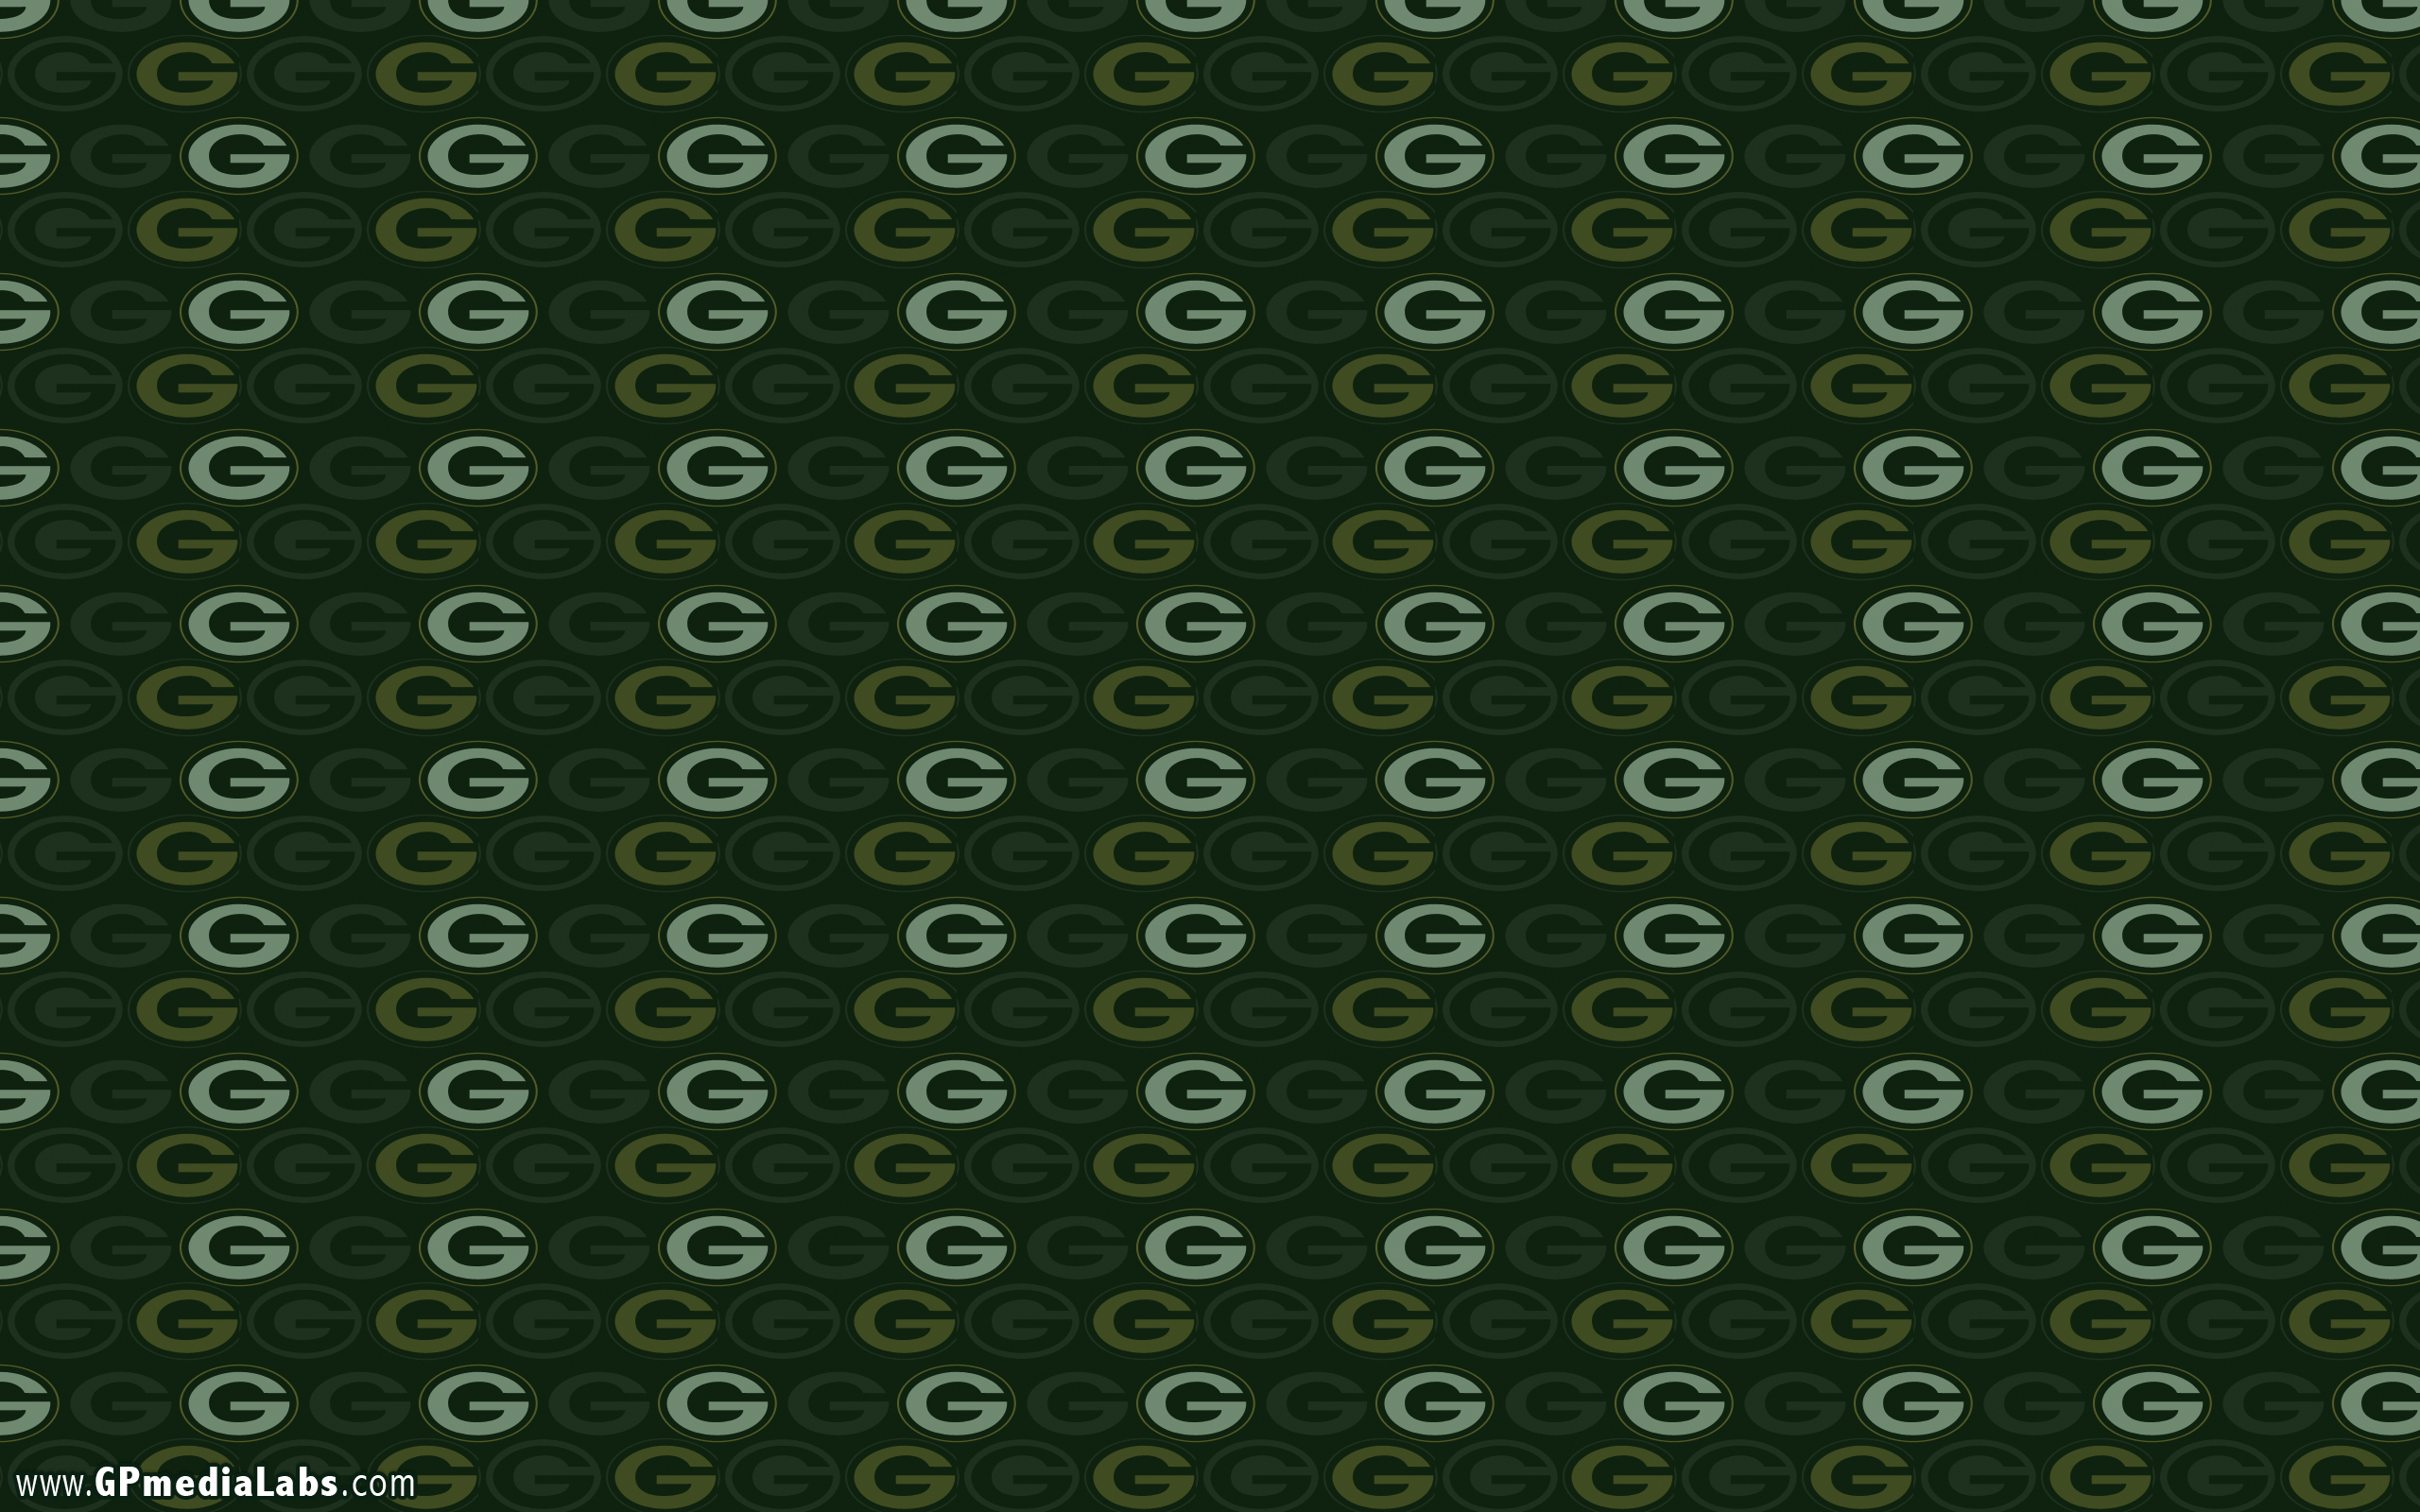 download wallpaper 1440 x 900 • 1920x1200 • 2560 x 1600 green bay packers heat up the frozen tundra with aaron rodgers